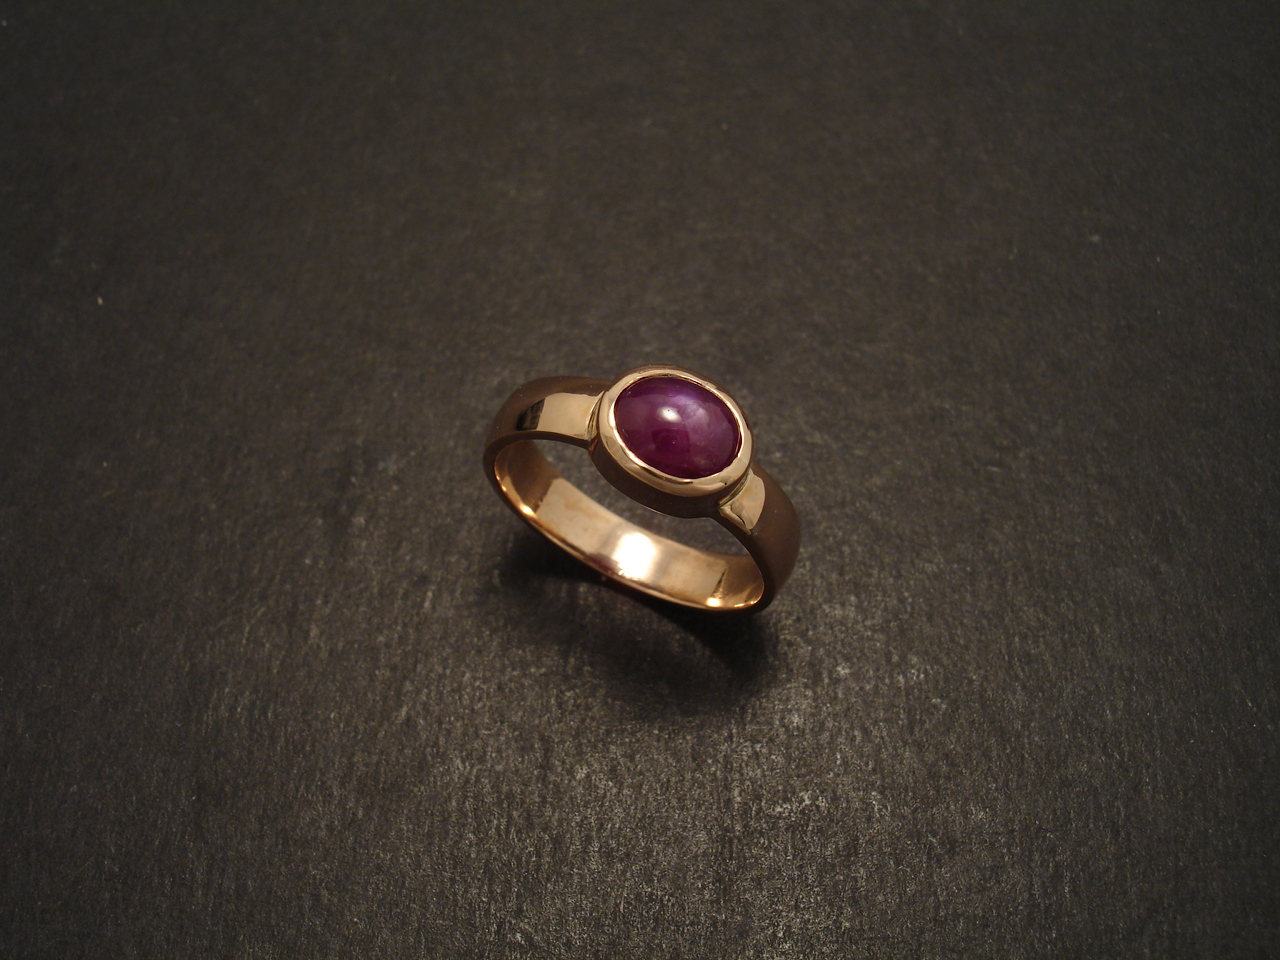 Relatively South Indian Star Ruby, Rose Gold Ring - Christopher William  PI15